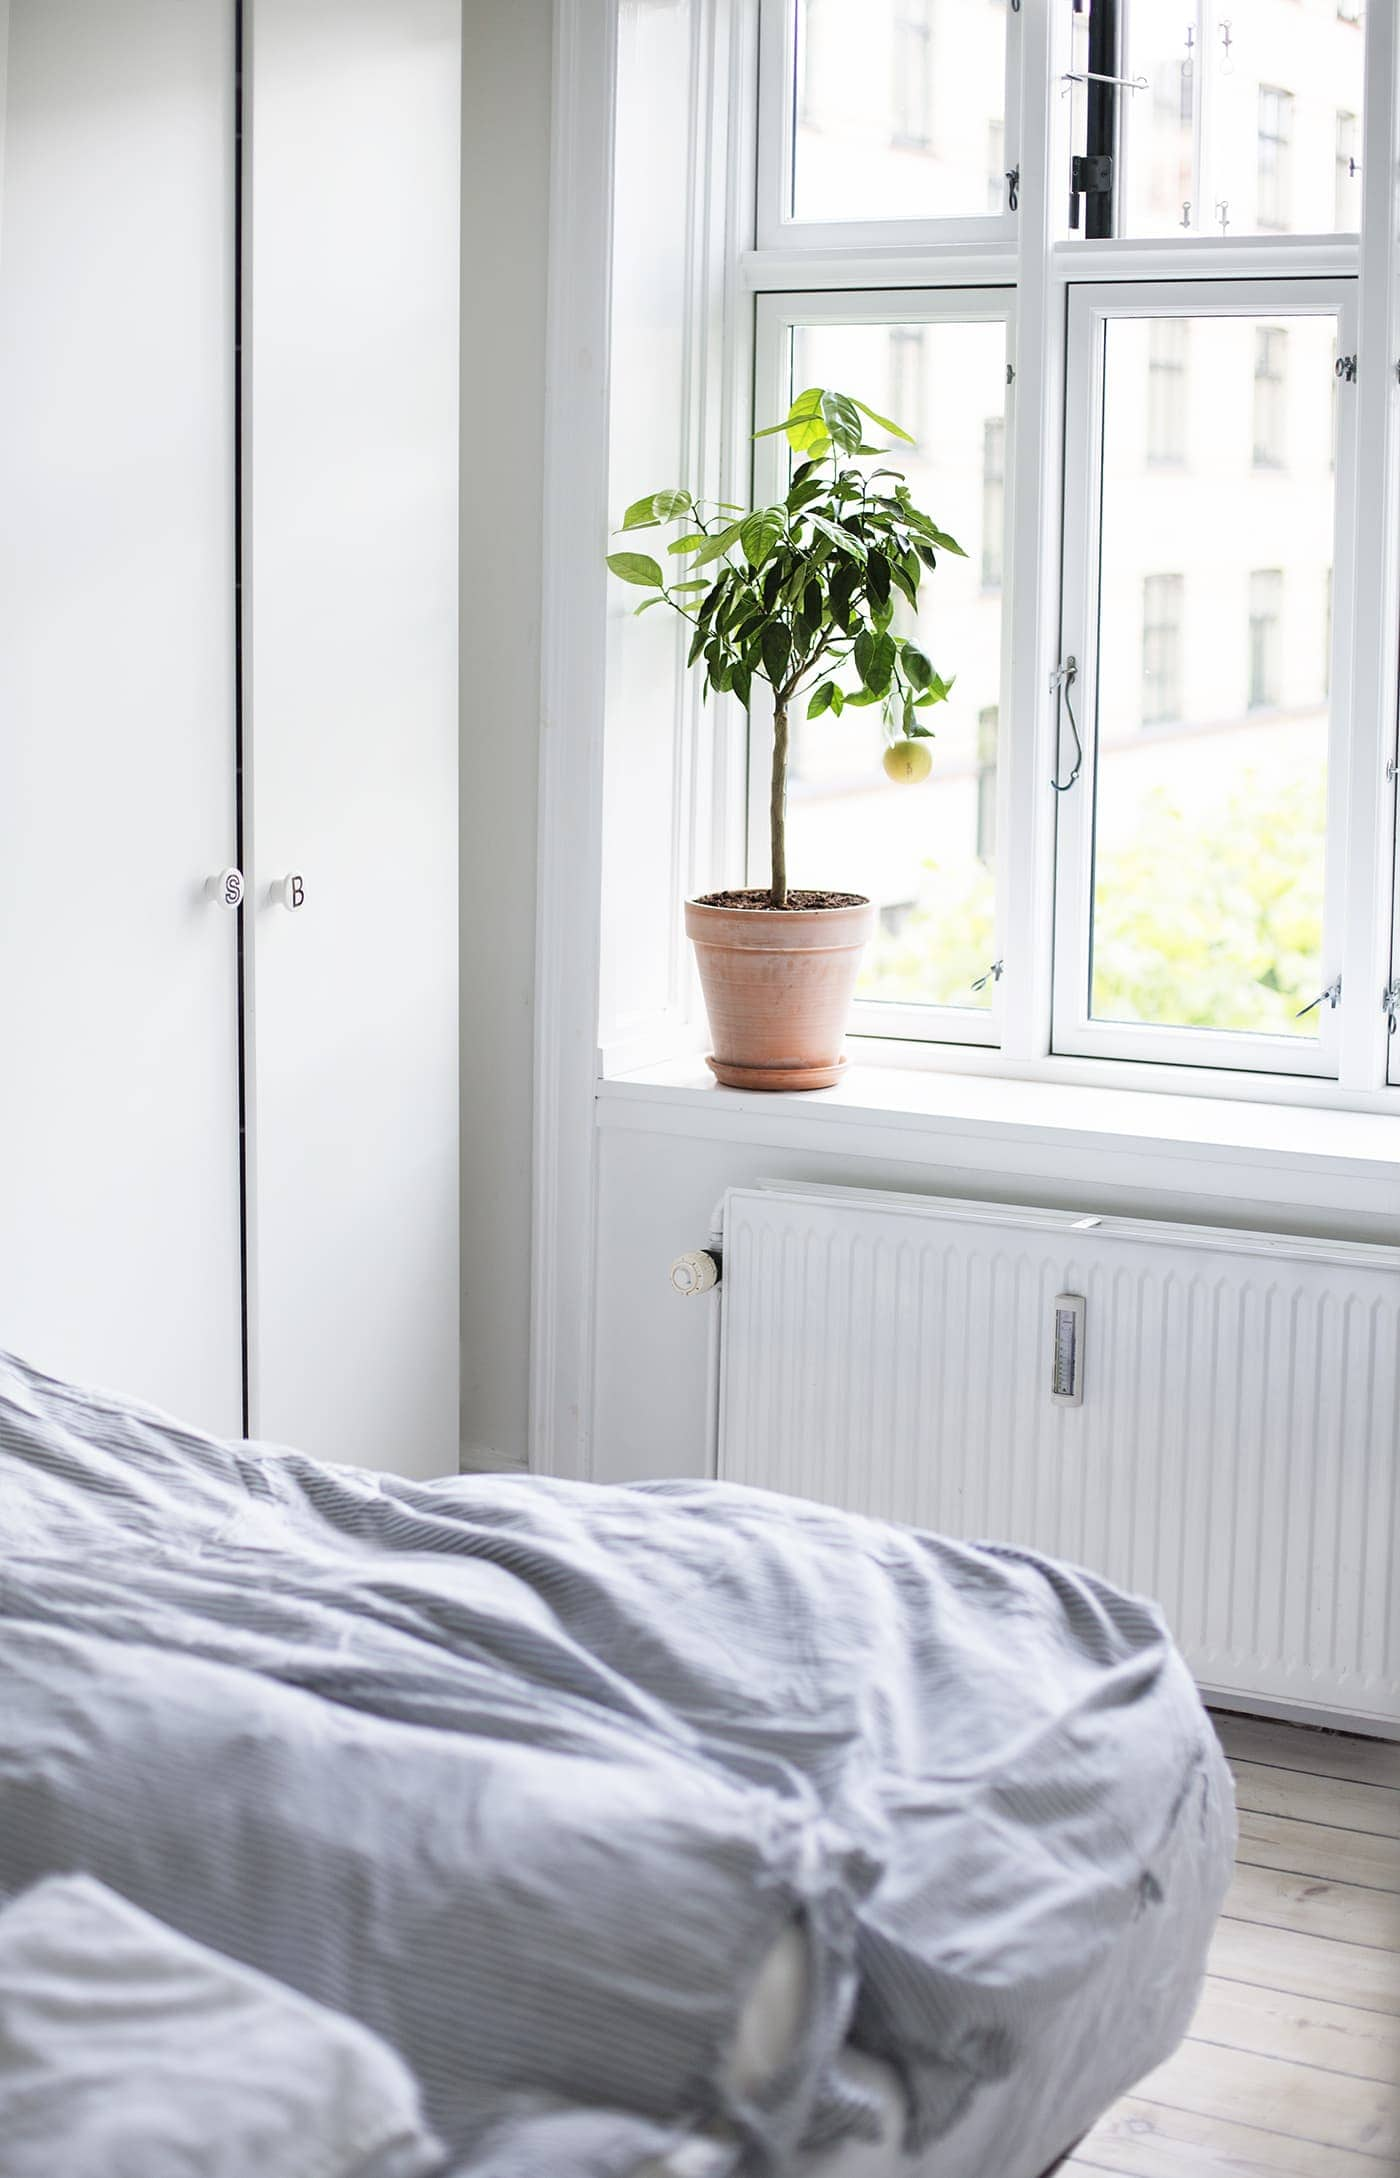 Copenhagen | wanderlust | air bnb bedroom 1